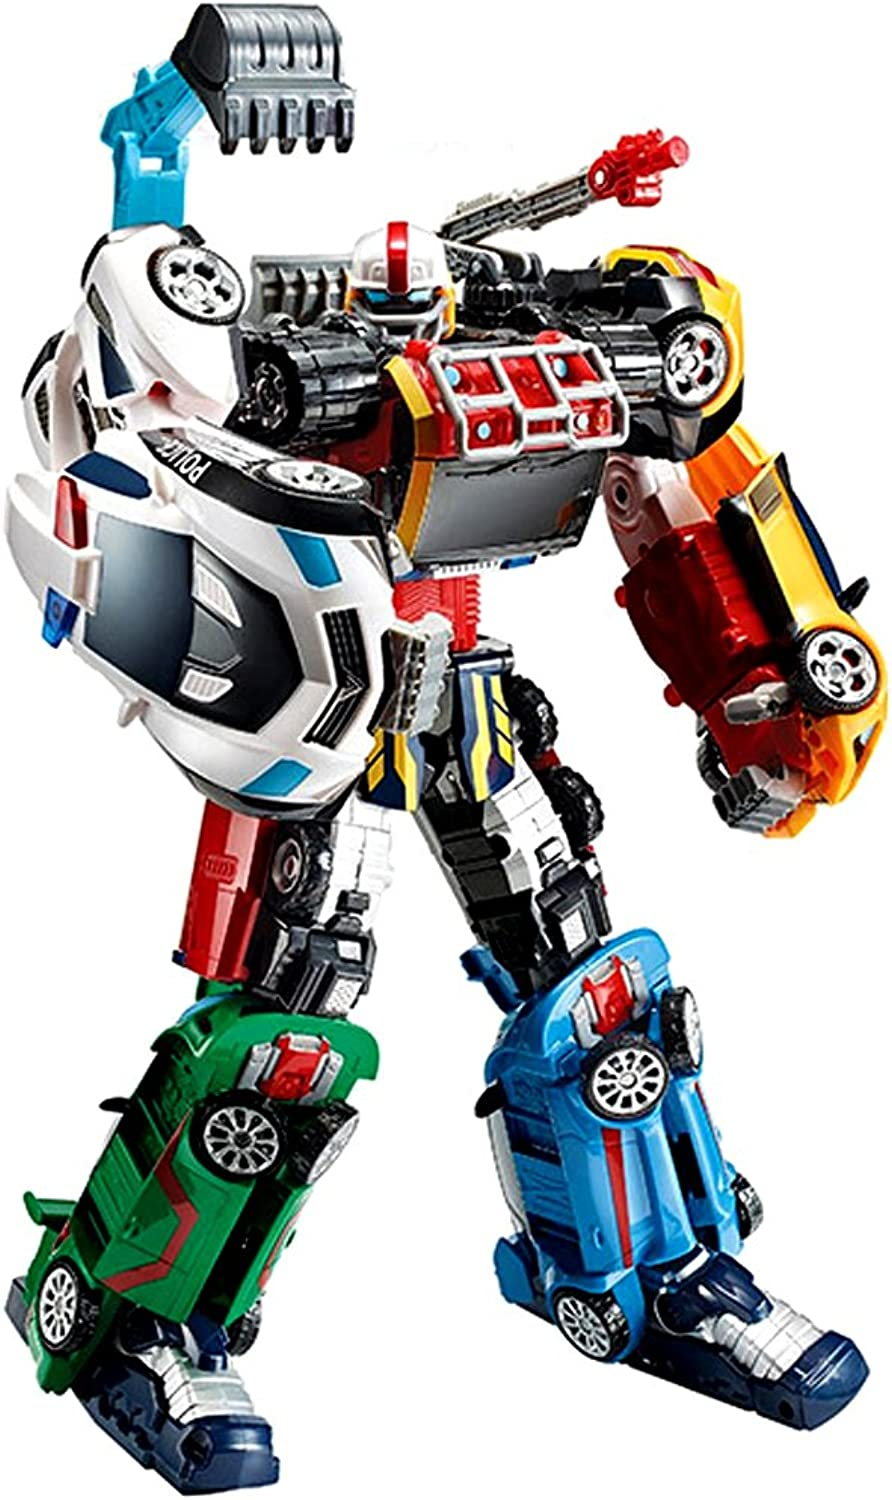 Young Toys Tobot Athlon magma6 Toy Robot Transforming Robot Transformer Toy Carbot Six-unit robots